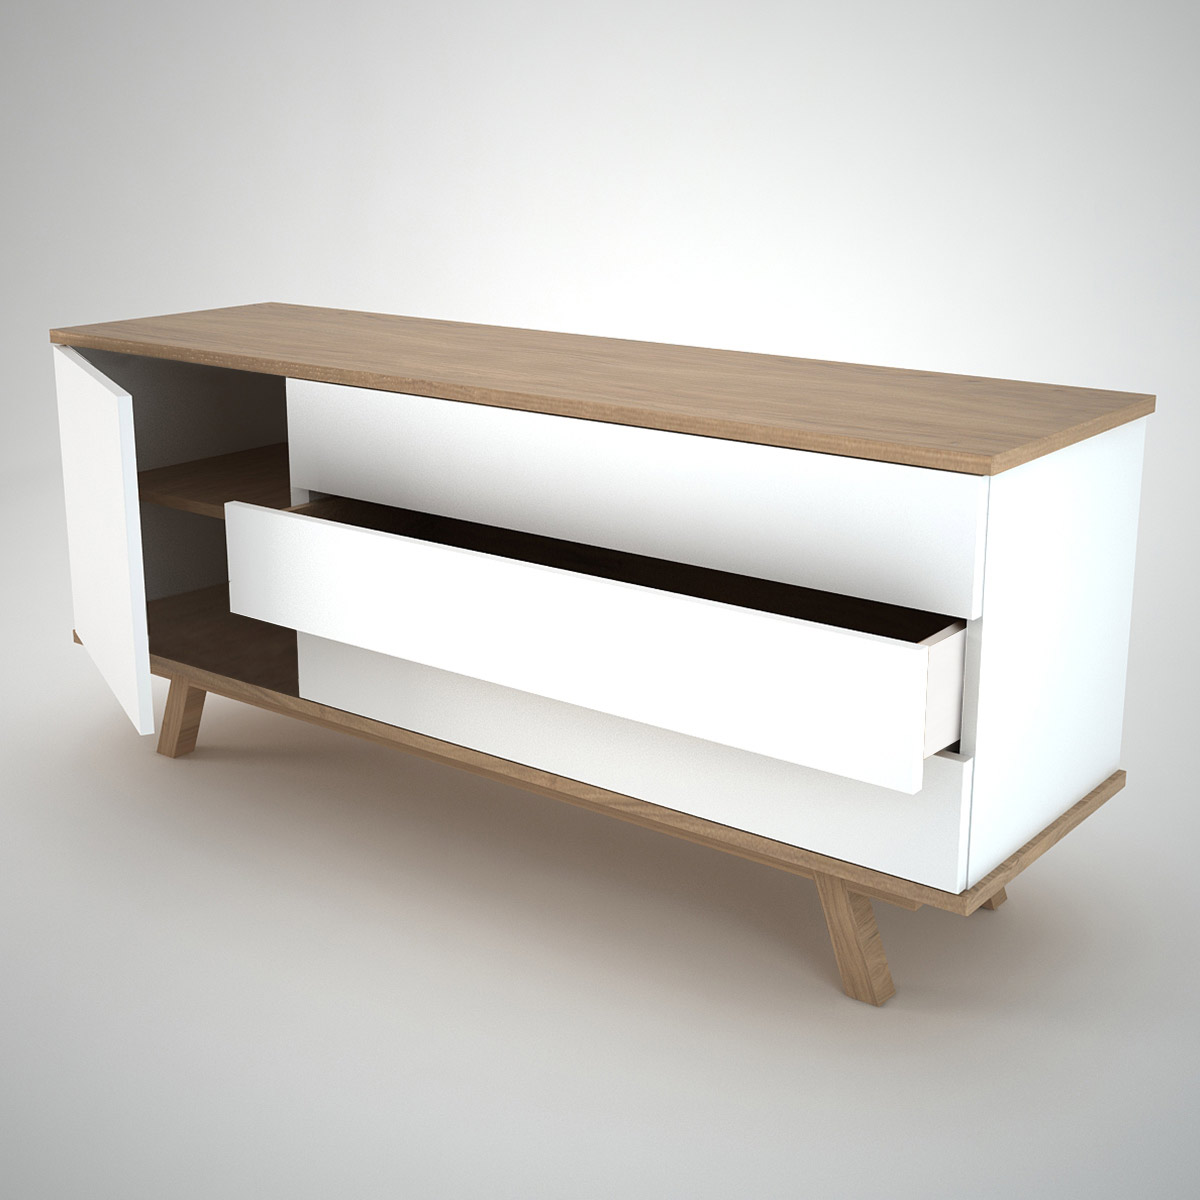 Ottawa sideboard 1 3 white join furniture for Furniture uk